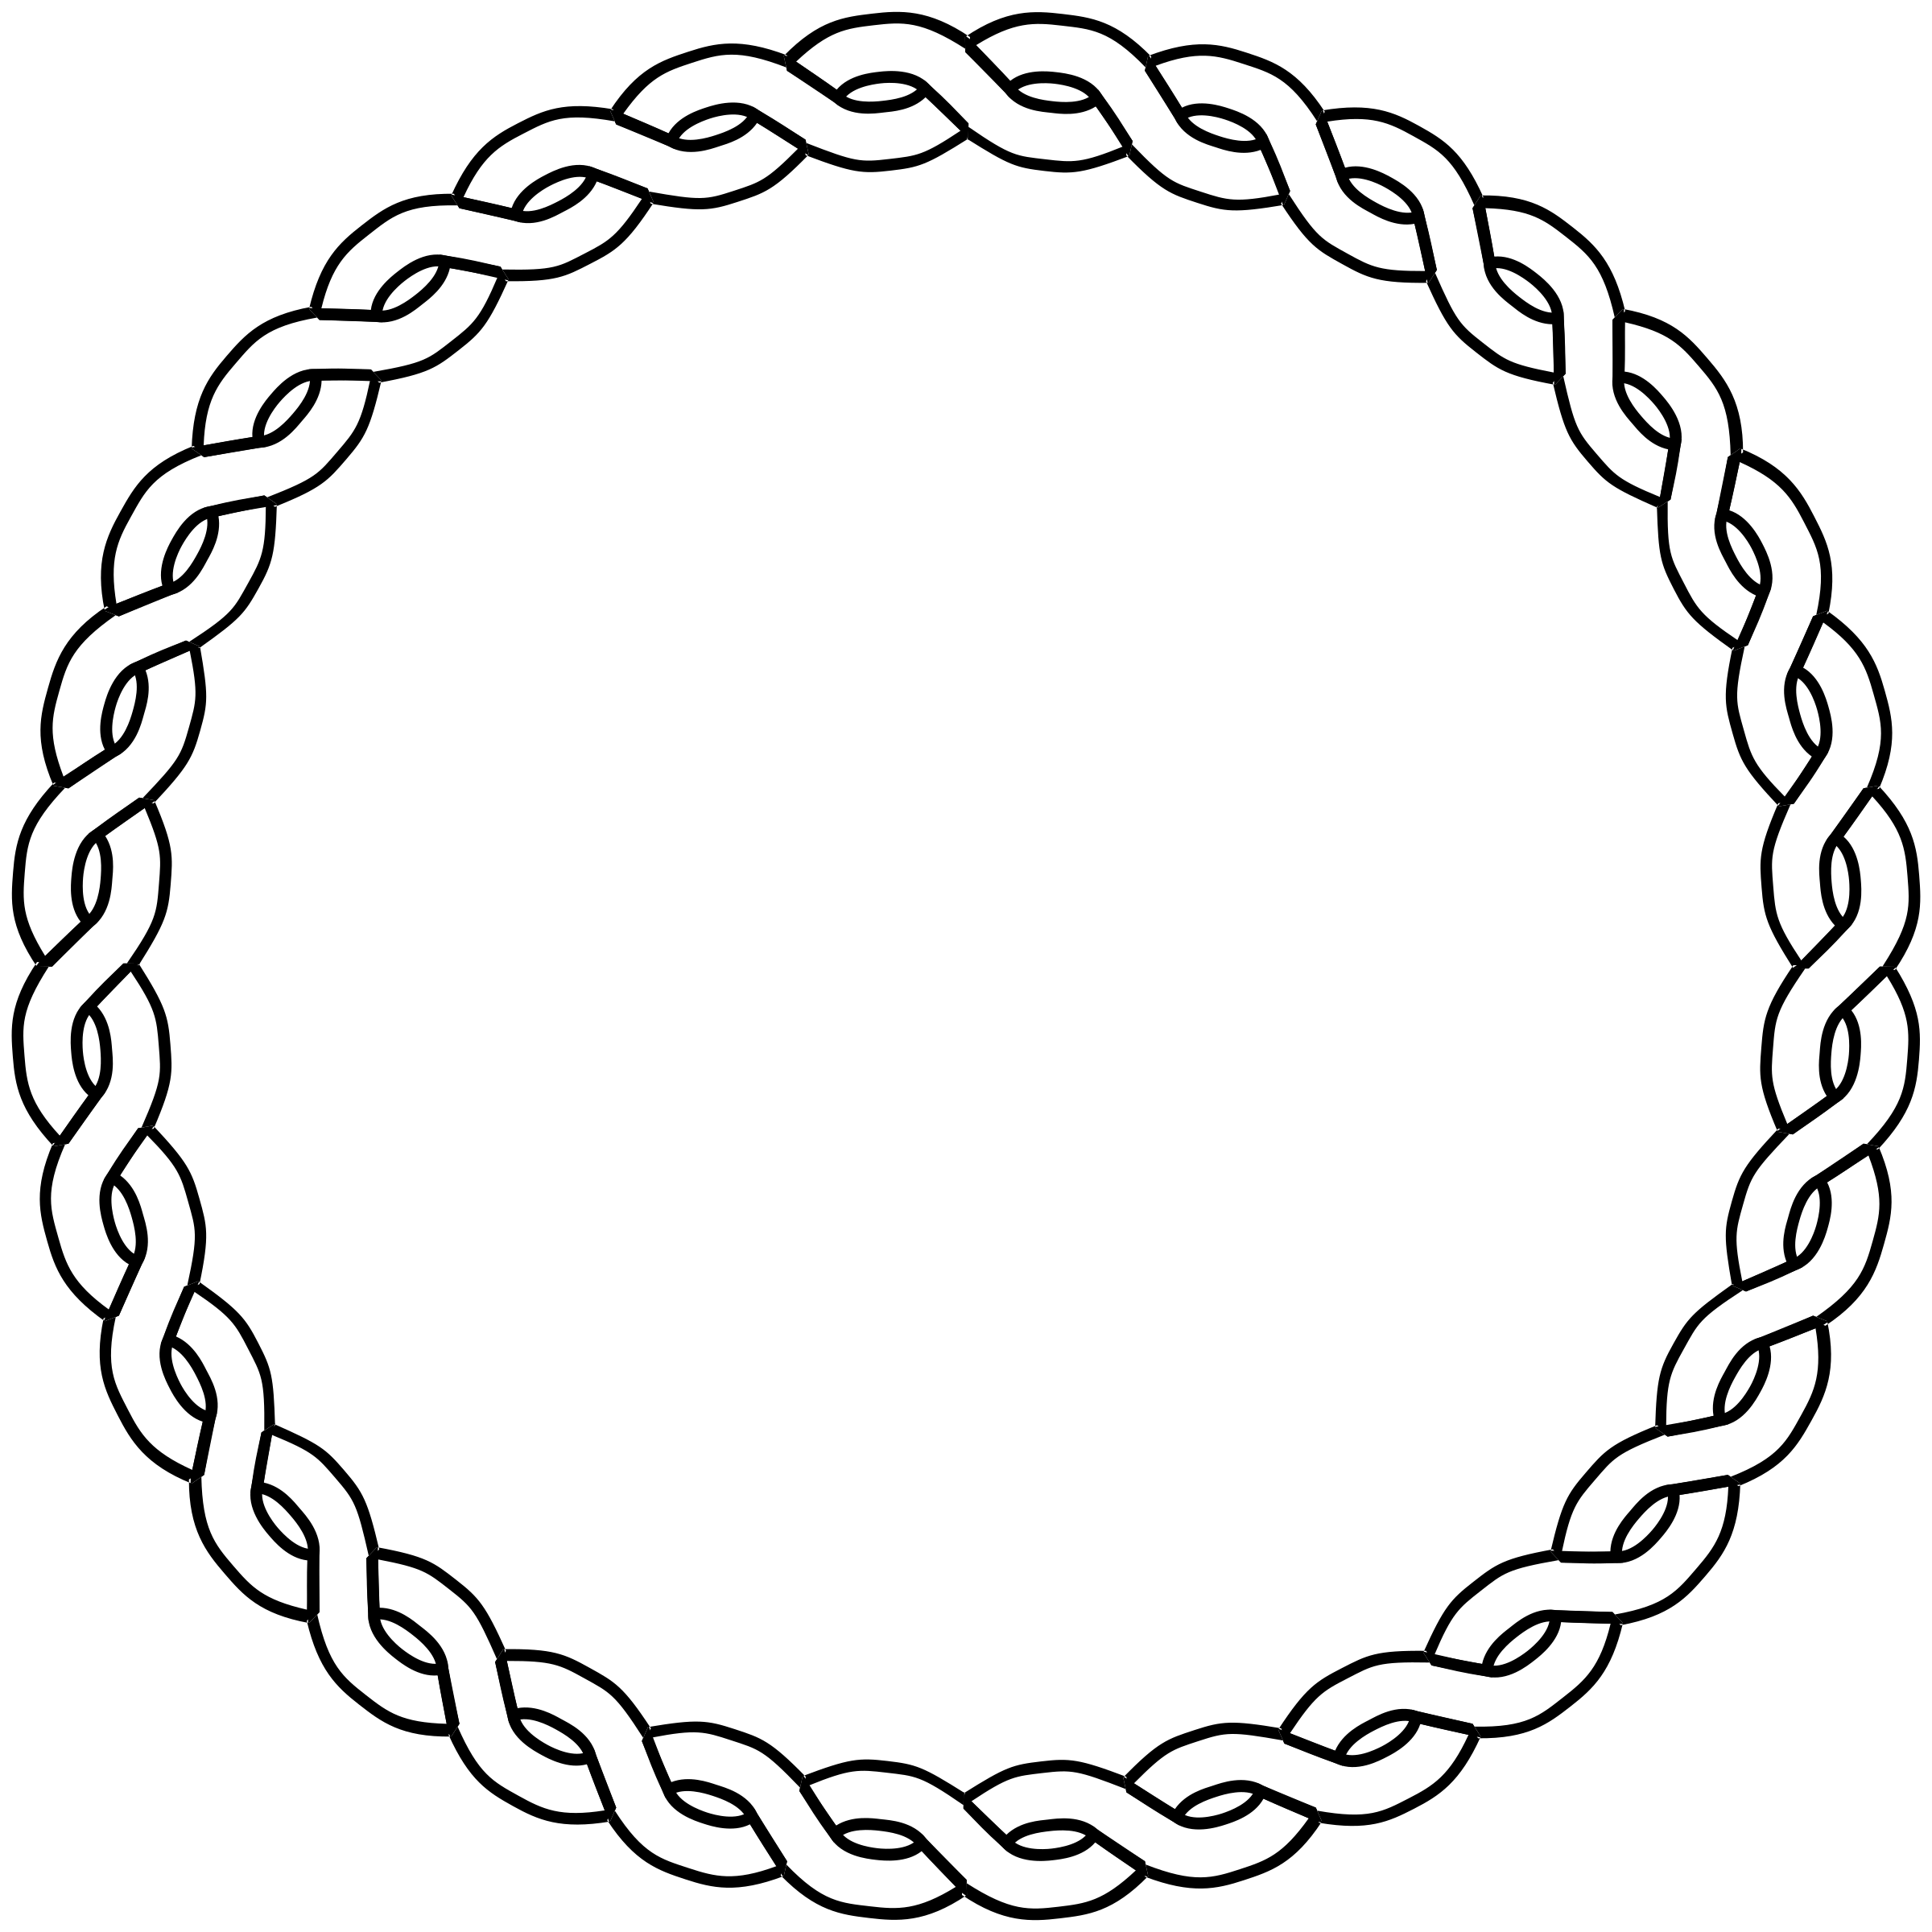 Braid clipart circle Border circle rope circle border